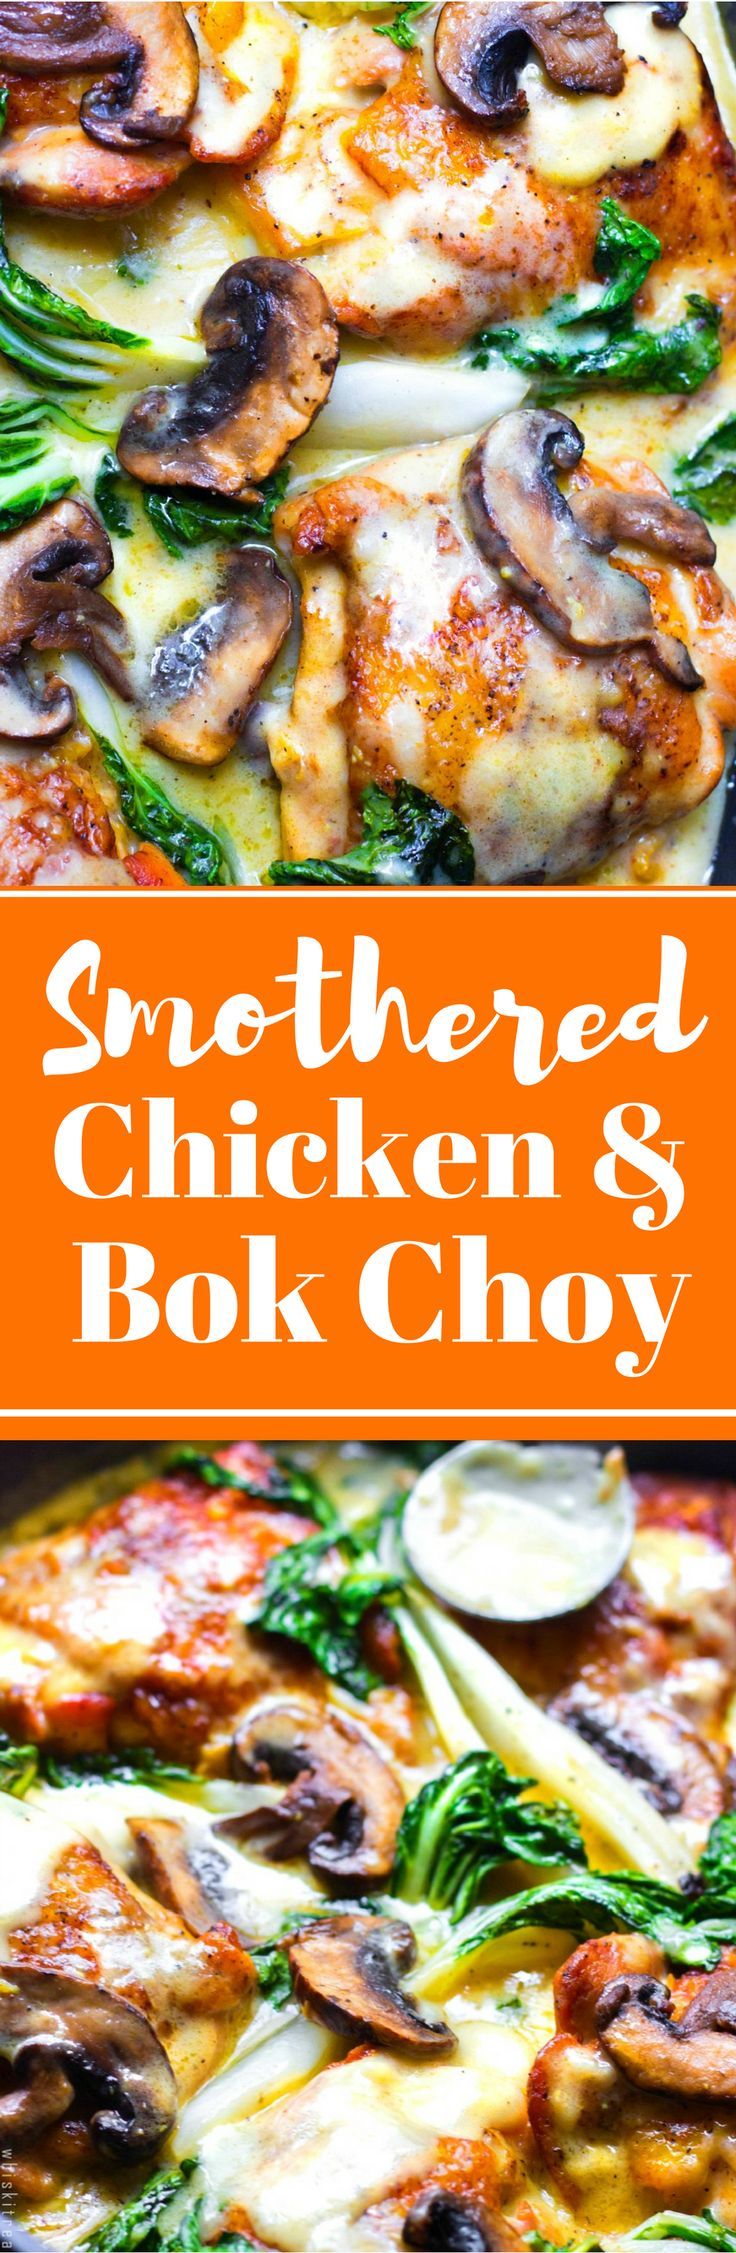 Crispy but tender and never soggy smothered chicken with mushrooms and ...Surprise... baby bok choy!